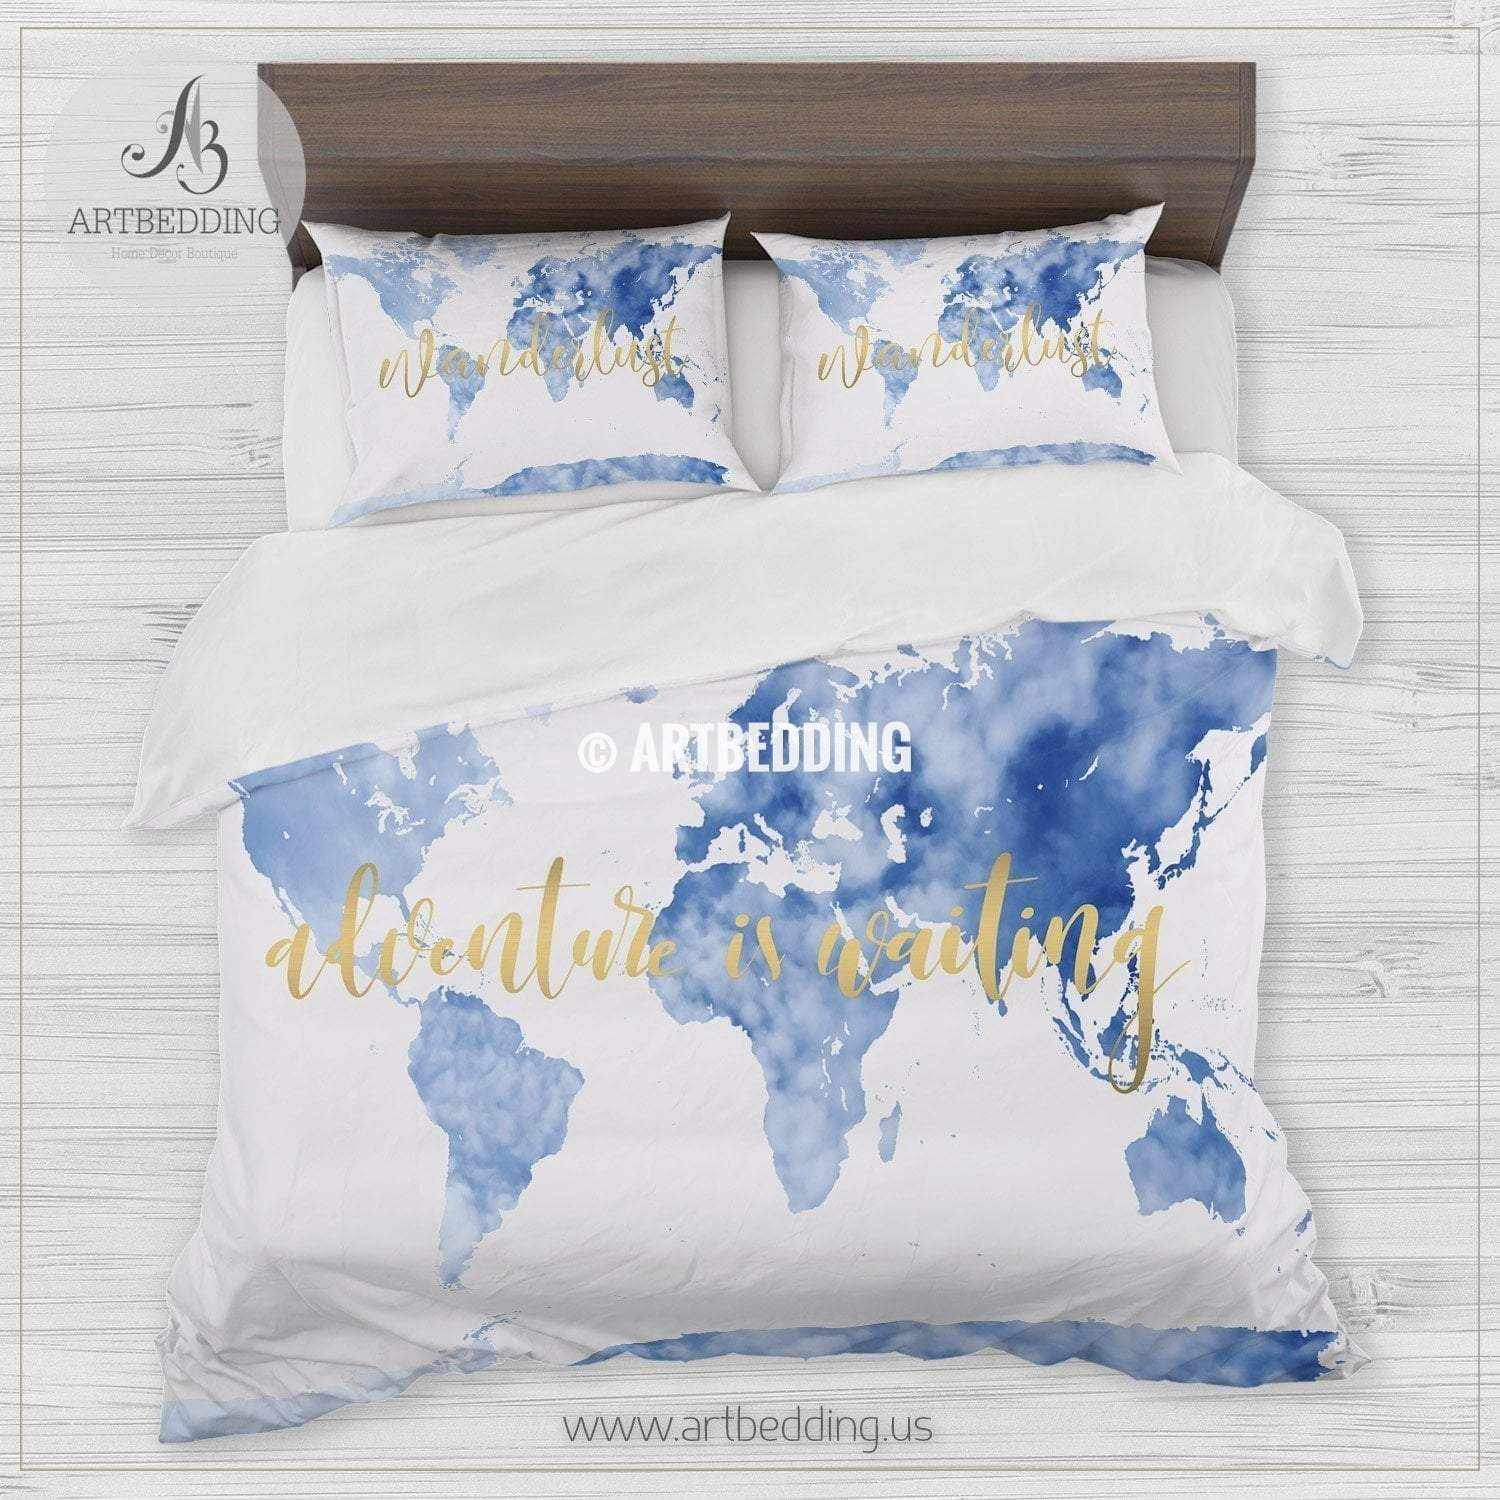 World Map Bedding Sky blue Adventure watercolor world map bedding, Bohemian